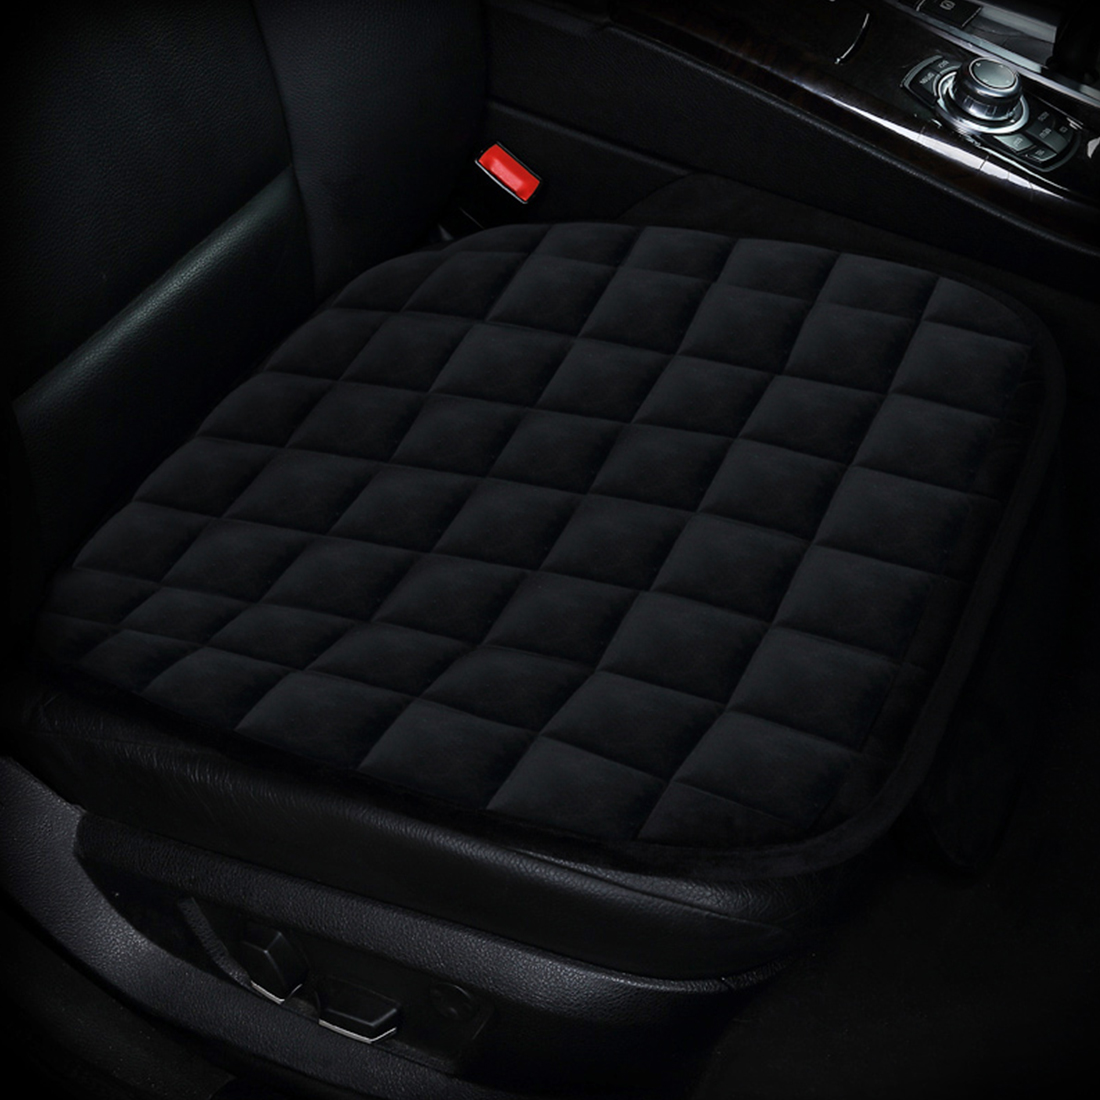 Dewtreetali Single Velvet Front Car Seat Cover Protector Pad Breathable Winter Warm Seat Cushion for VW PEUGEOT AUDI BMW LADA dewtreetali universal automoblies seat cover four seaons car seat protector full set car accessories car styling for vw bmw audi